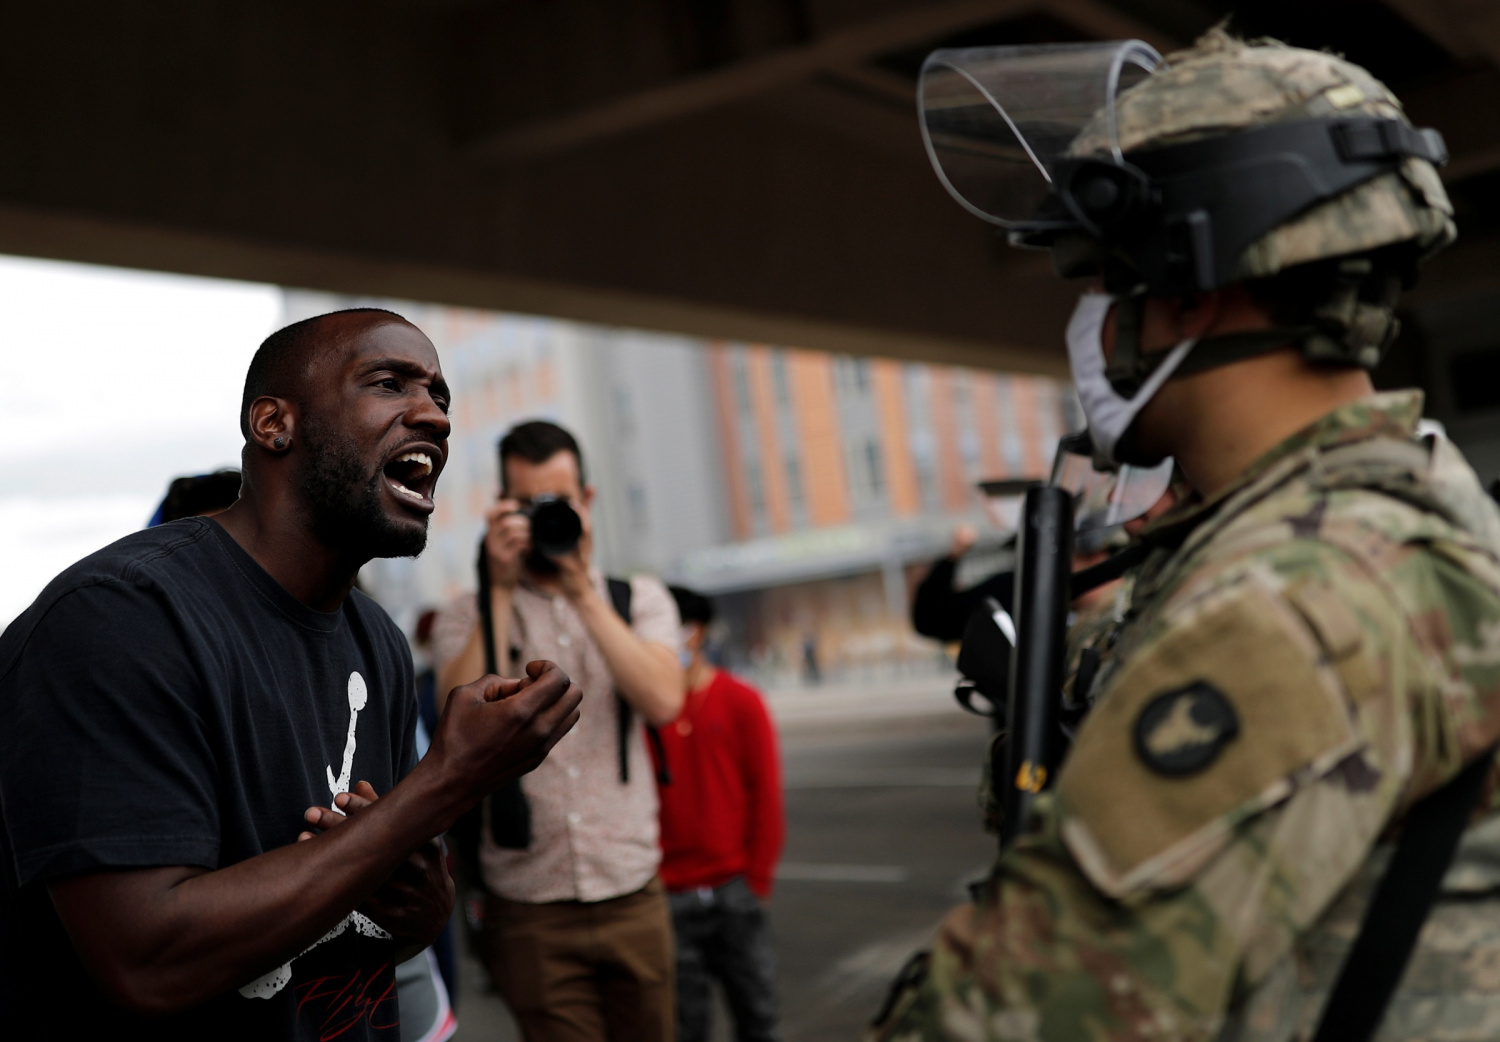 A man confronts a National Guard member guarding the area in the aftermath of a protest against the death in Minneapolis police custody of African-American man George Floyd